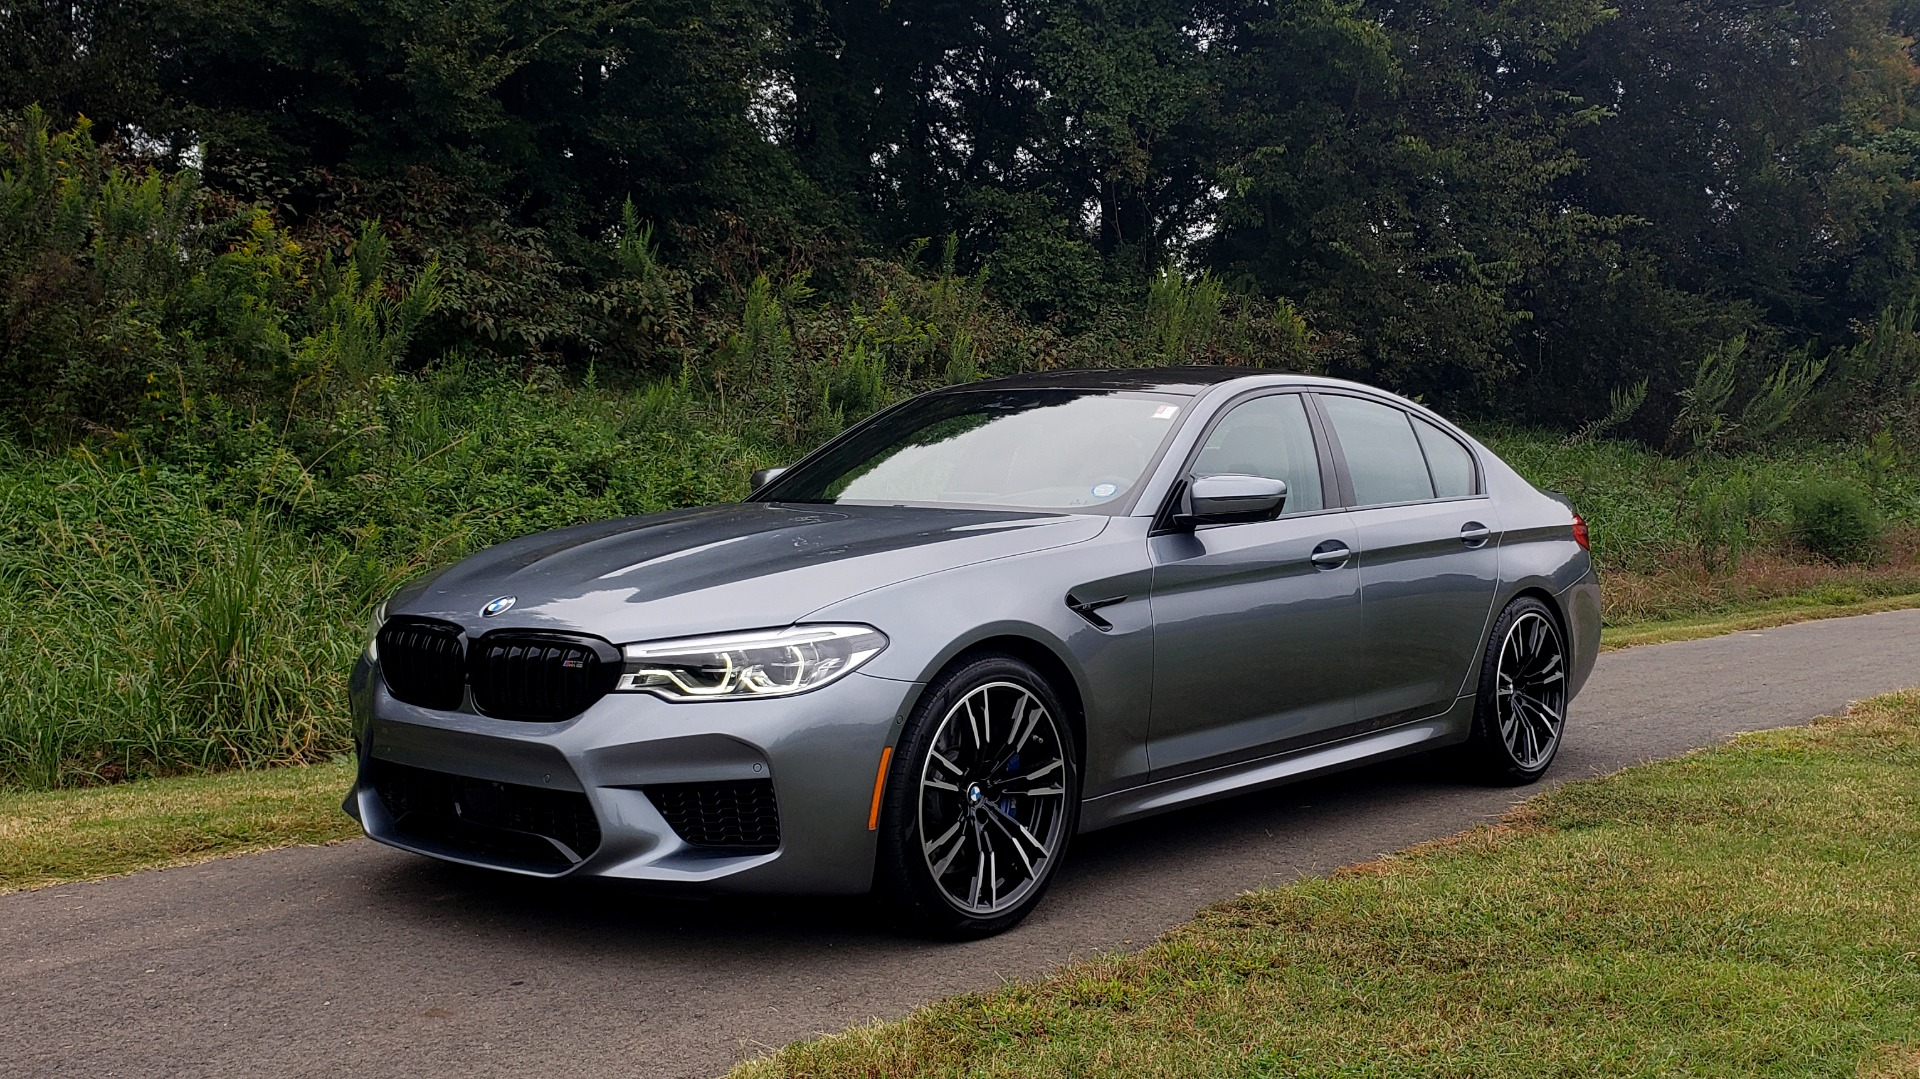 Used 2019 BMW M5 EXEC PKG / DRVR ASST PLUS / B&W SOUND / NAV / REARVIEW for sale Sold at Formula Imports in Charlotte NC 28227 8